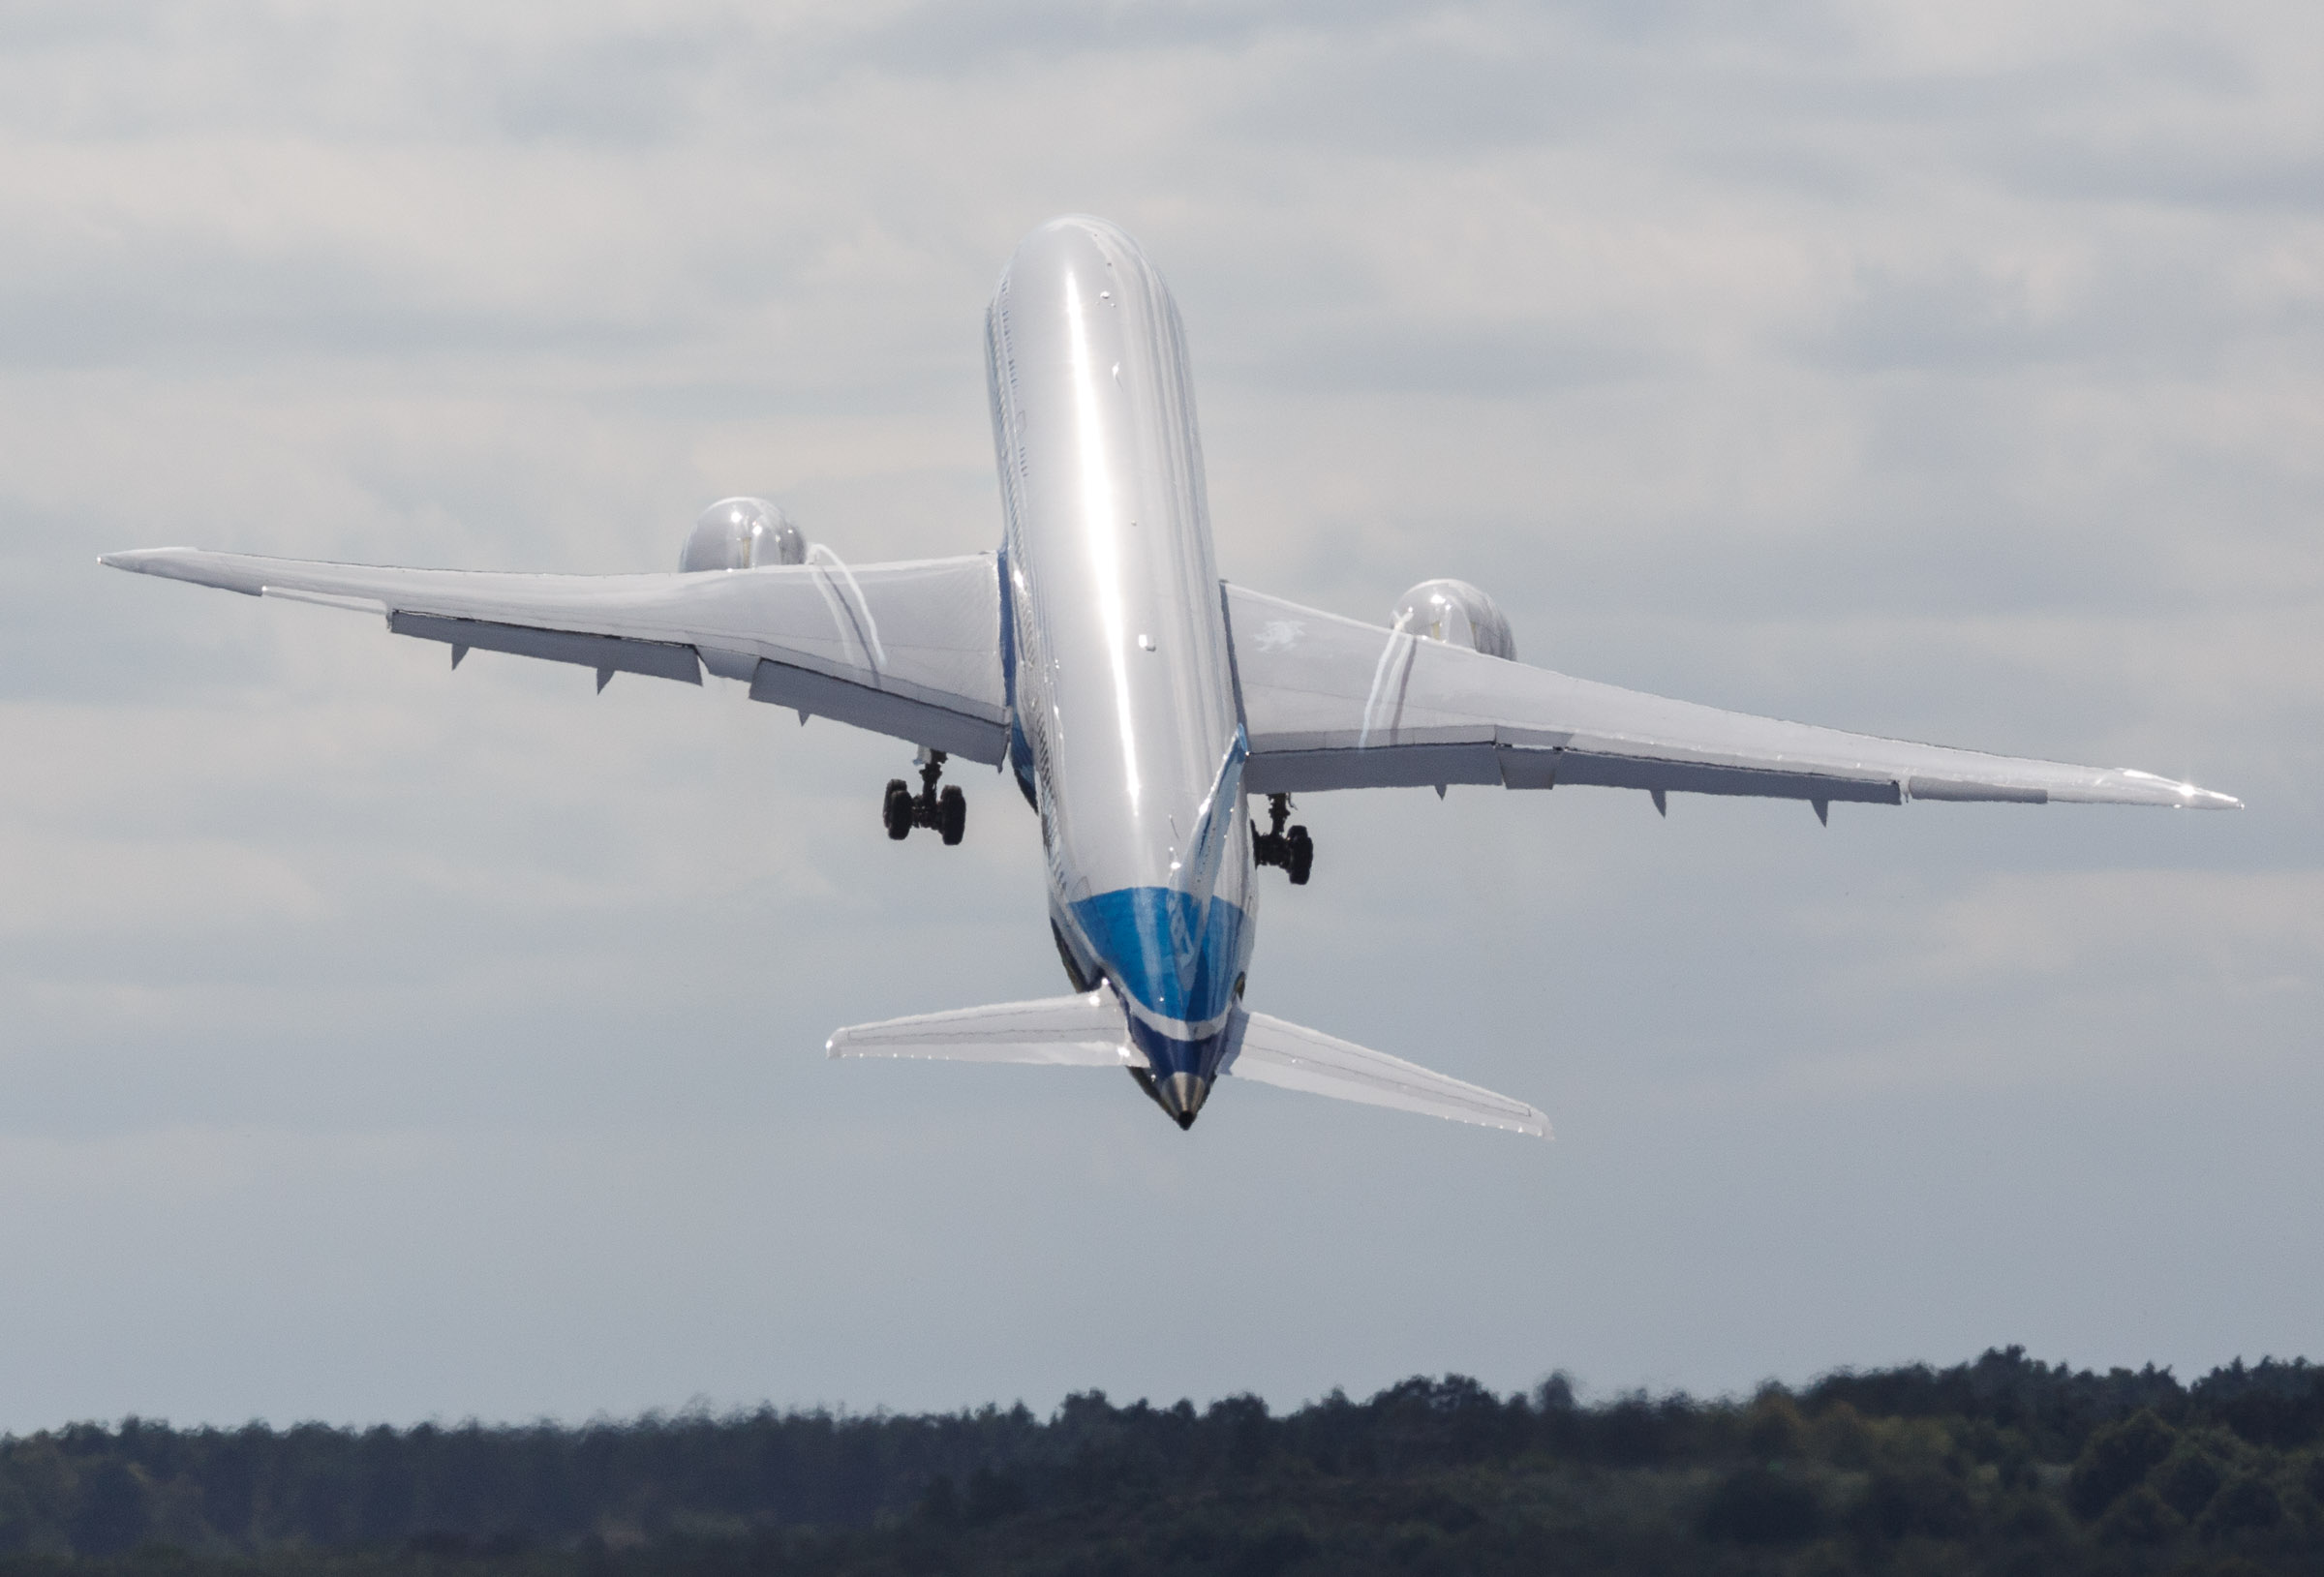 Boeing's 787-9 taking off at the Farnborough International Airshow.